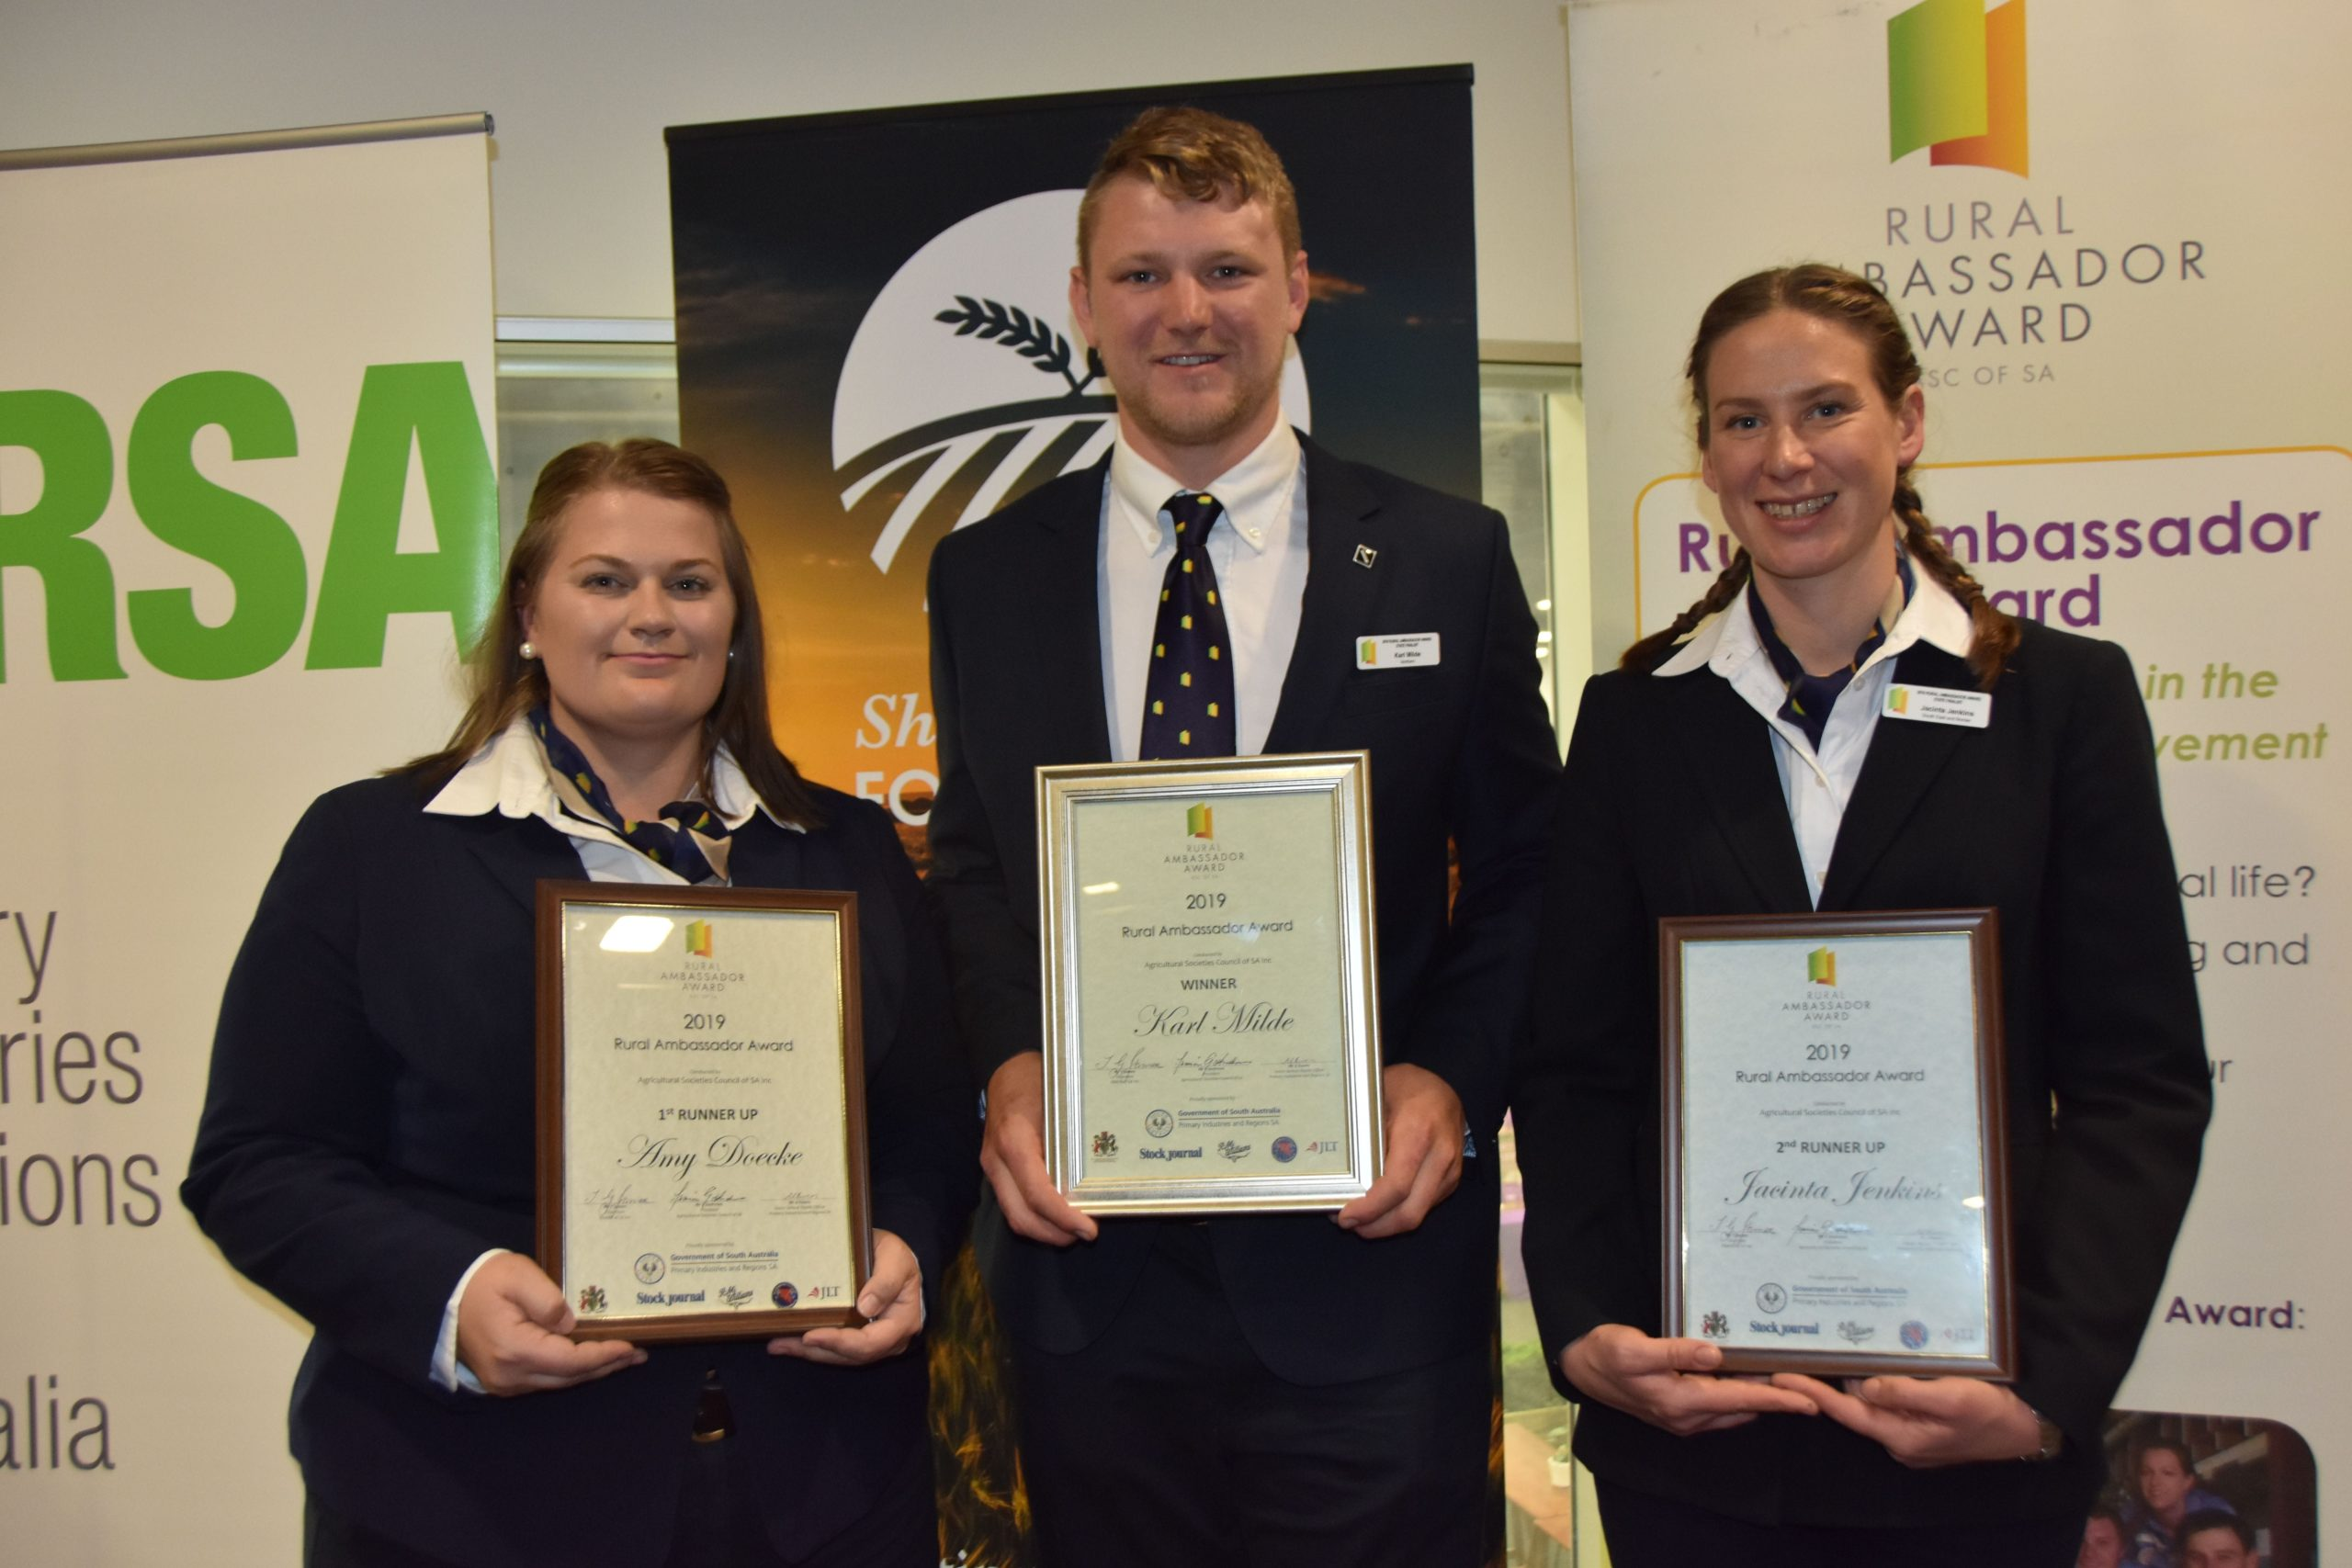 2019 Rural Ambassador Award Winners